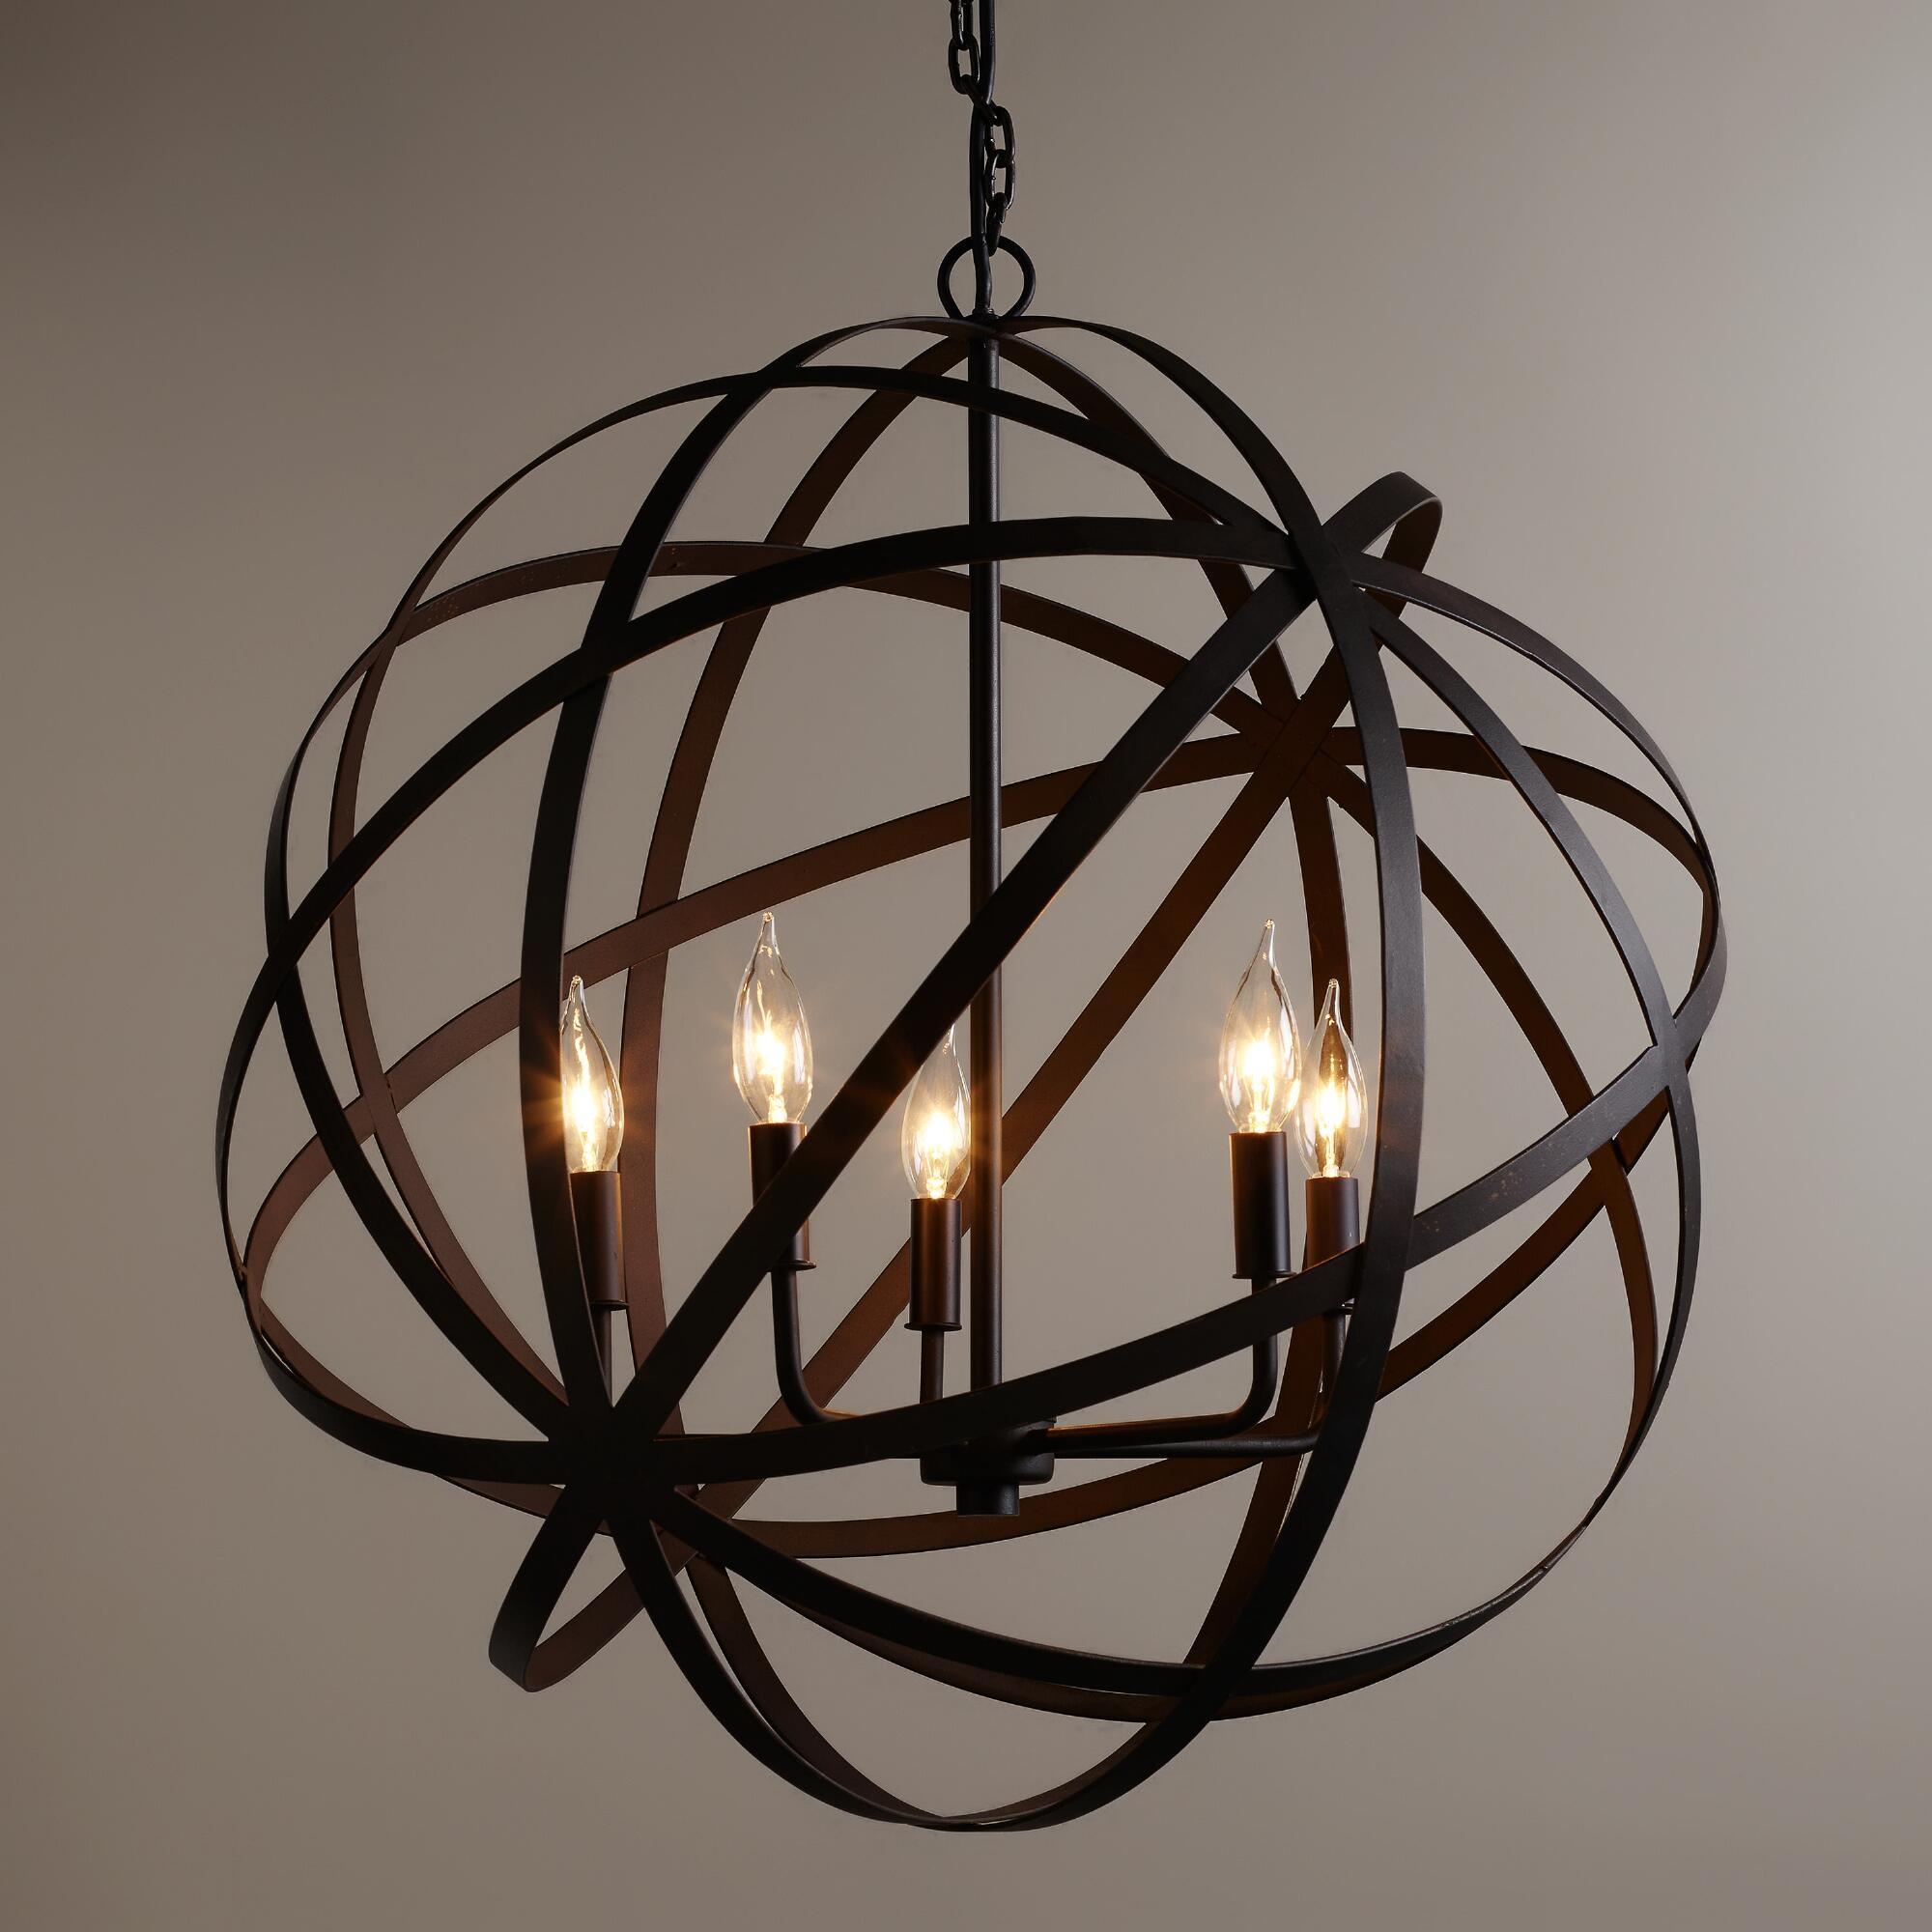 12 Best Ideas of Metal Sphere Chandelier